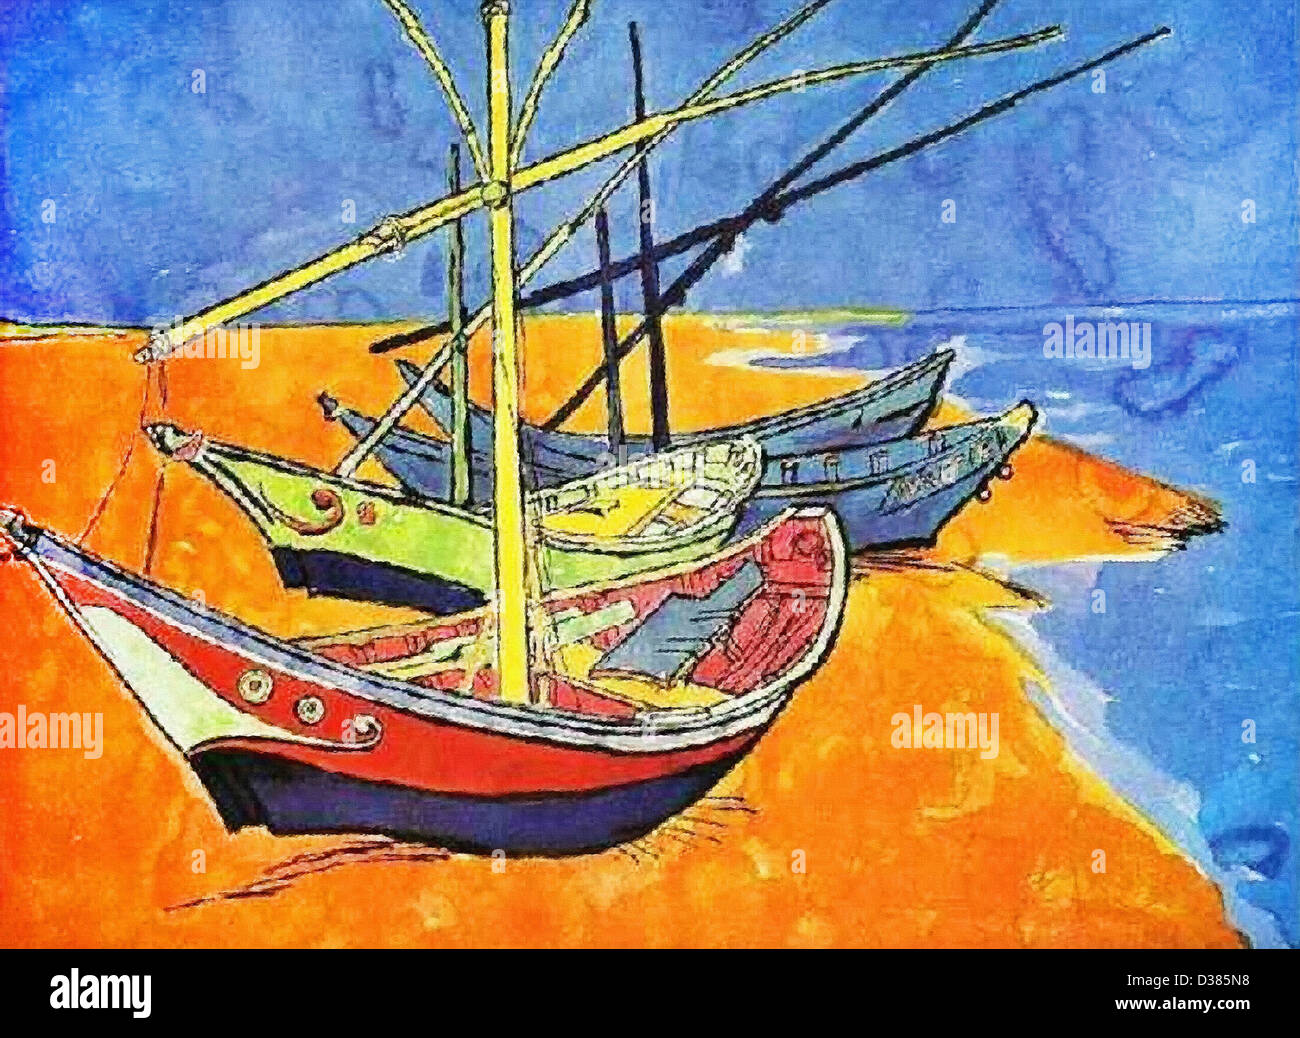 Vincent van Gogh, Fishing Boats on the Beach at Saintes-Maries-de-la-Mer. 1888. Japonism. Oil on canvas. Hermitage - Stock Image